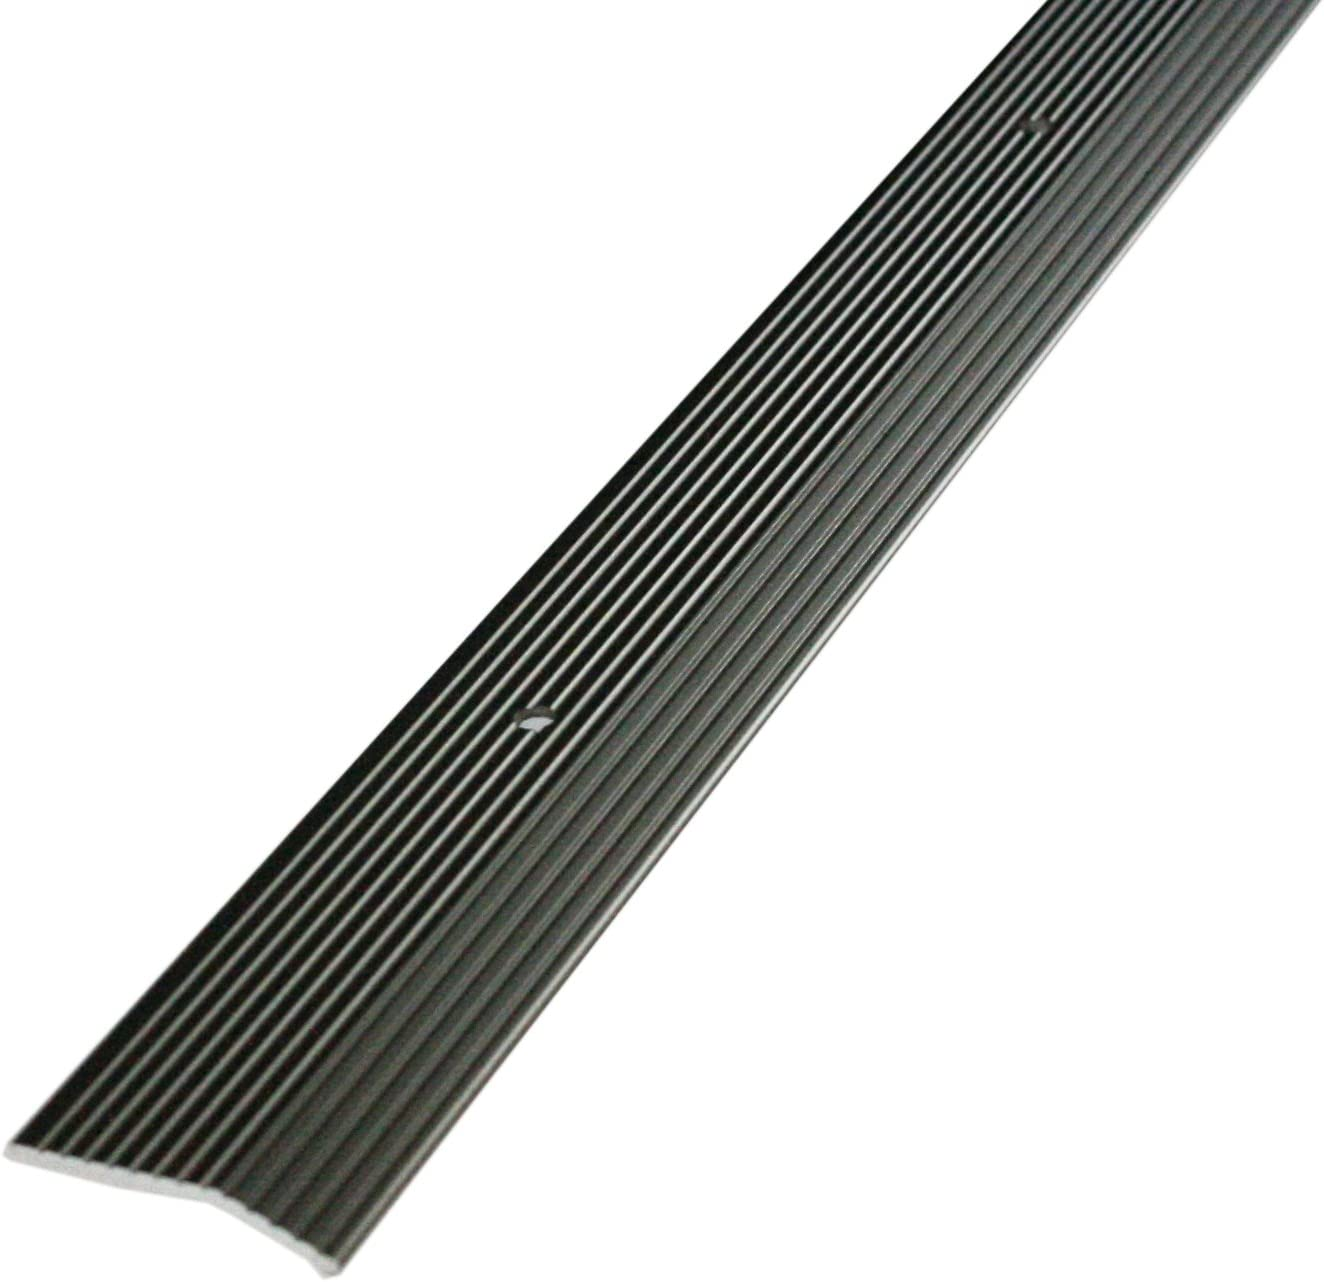 36 in L X 1-3//8 in W M-D Building Products 43854 M-D Wide Fluted Carpet Trim Pewter, Aluminum Pack of 1